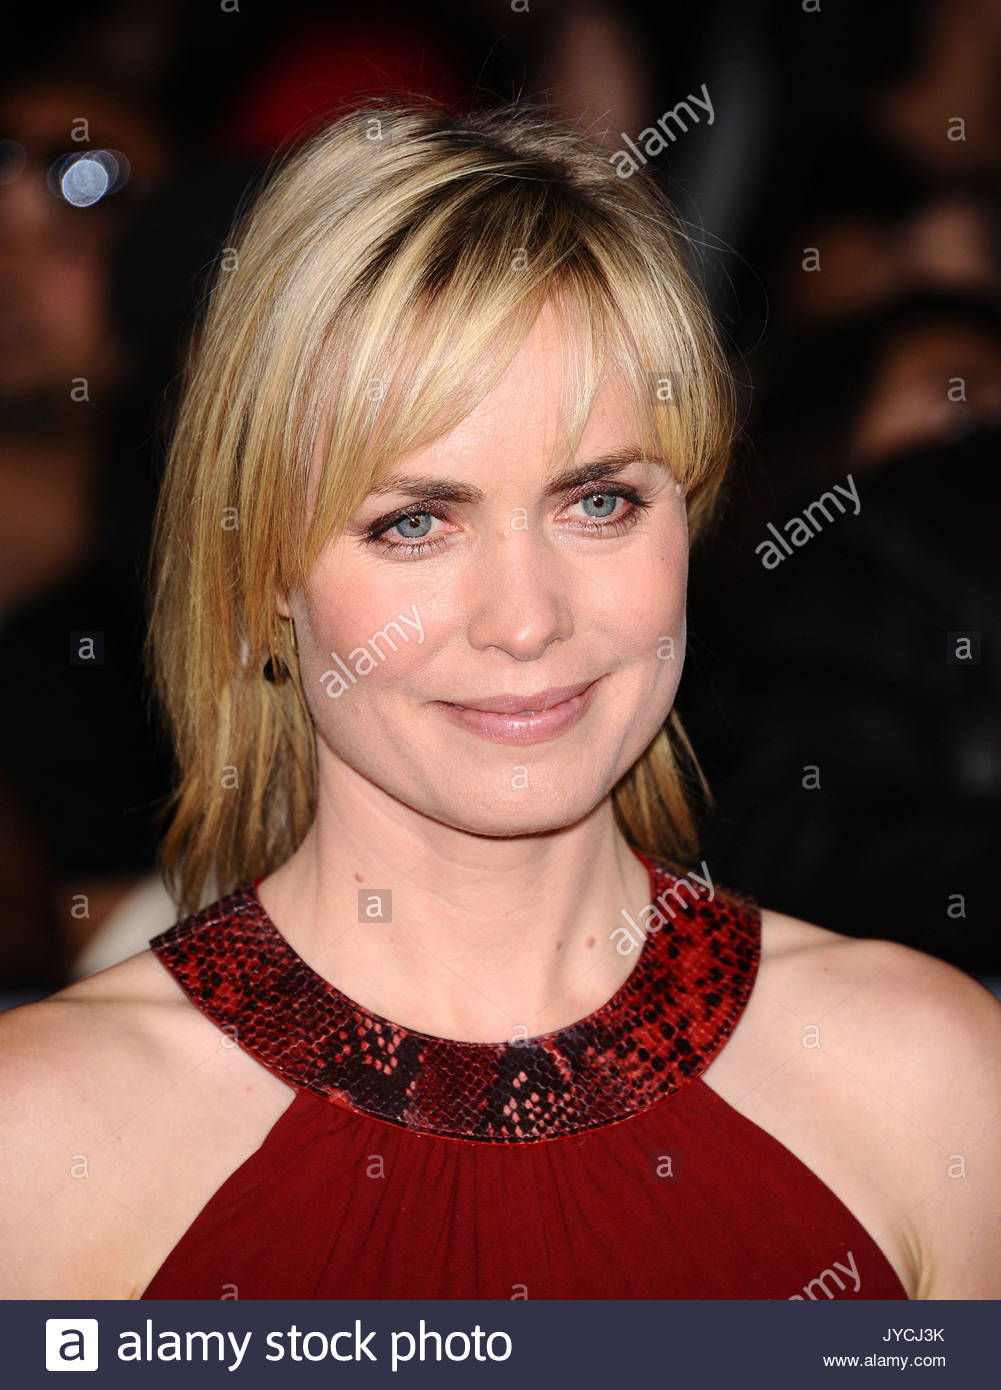 Celebrity Radha Mitchell nude photos 2019